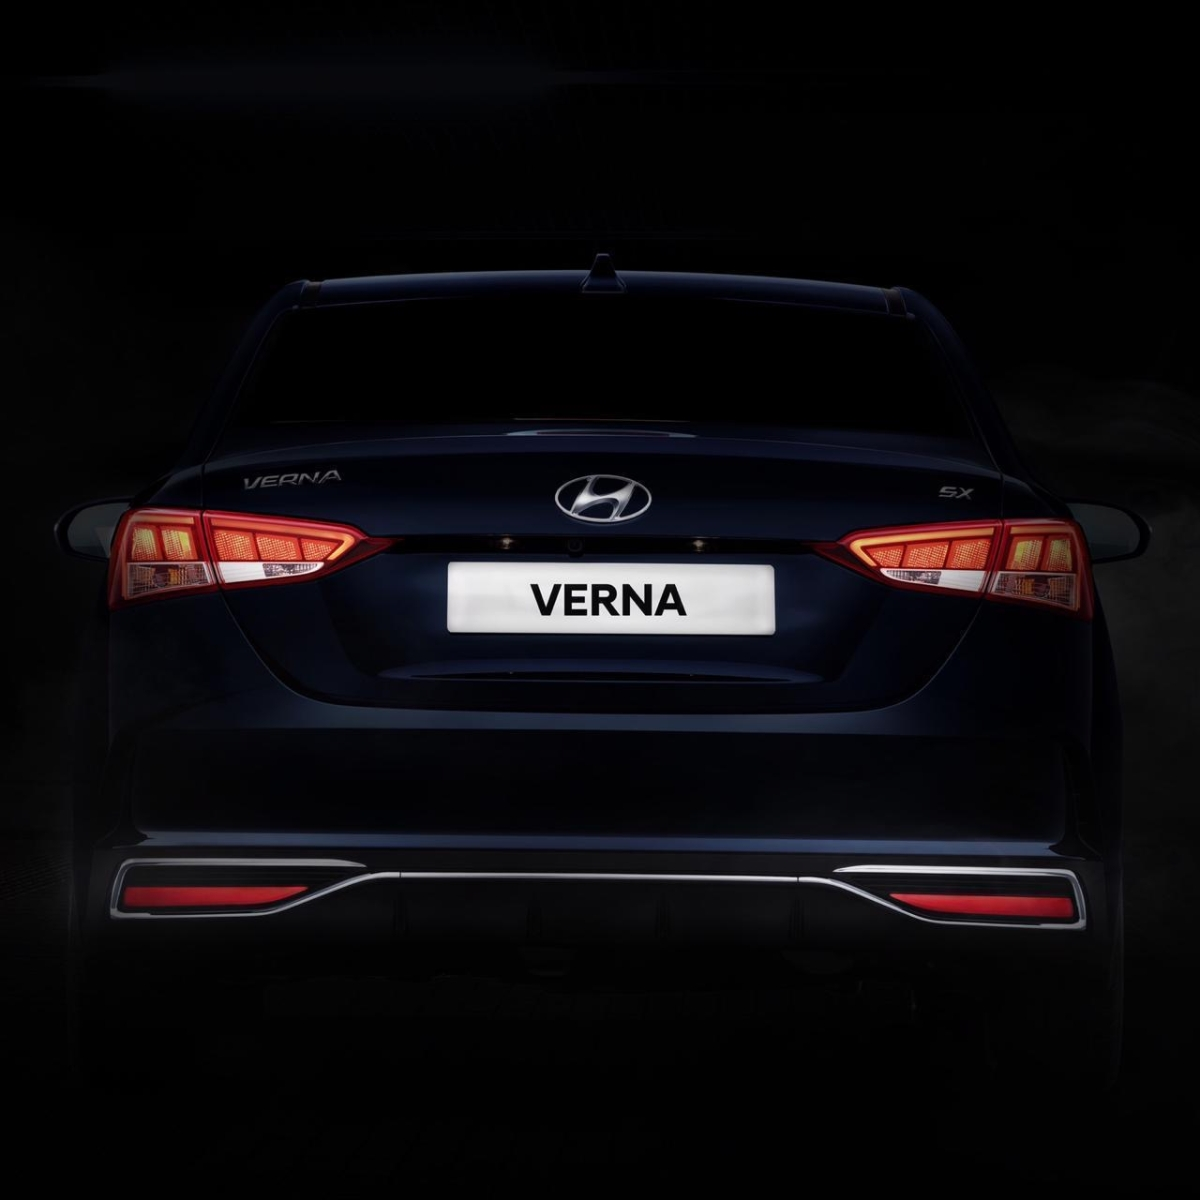 The rear of the Hyundai Verna remains largely unchanged